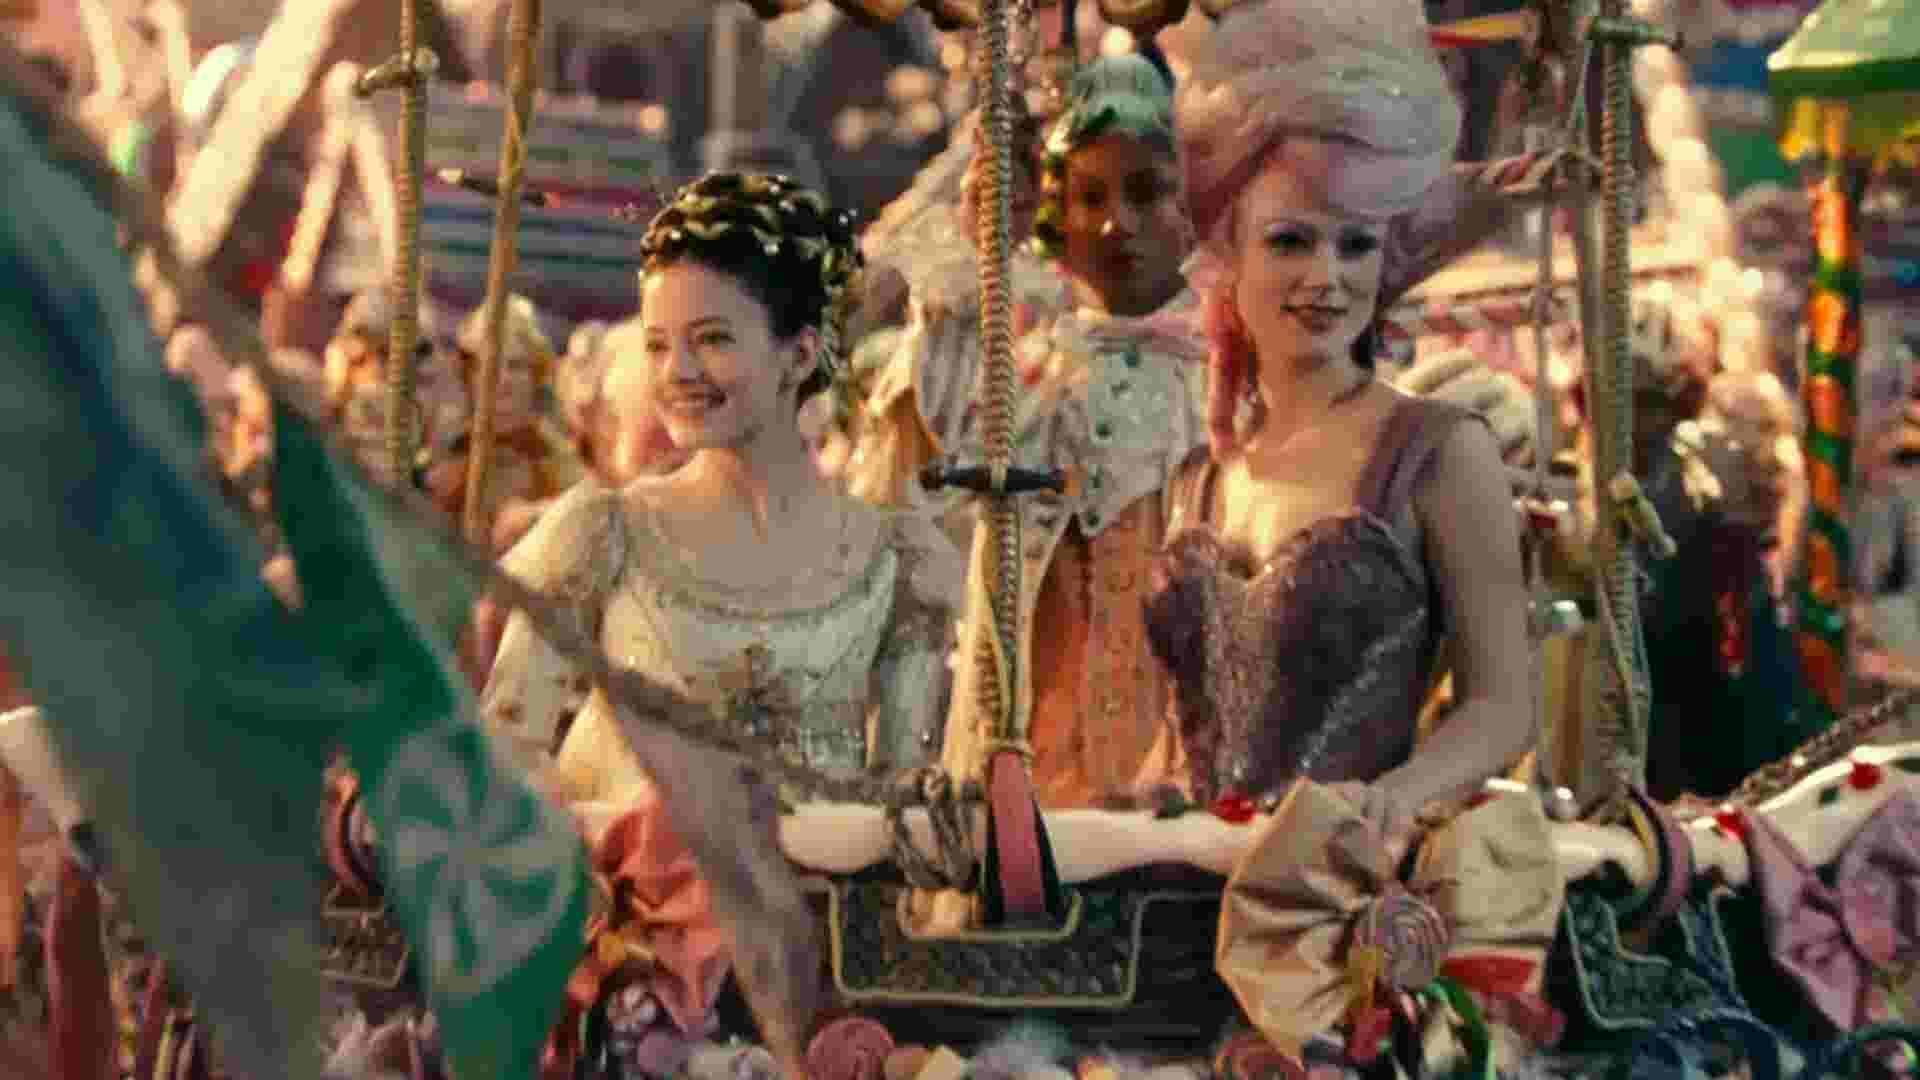 Disney's 'The Nutcracker and the Four Realms' reimagines classic tale